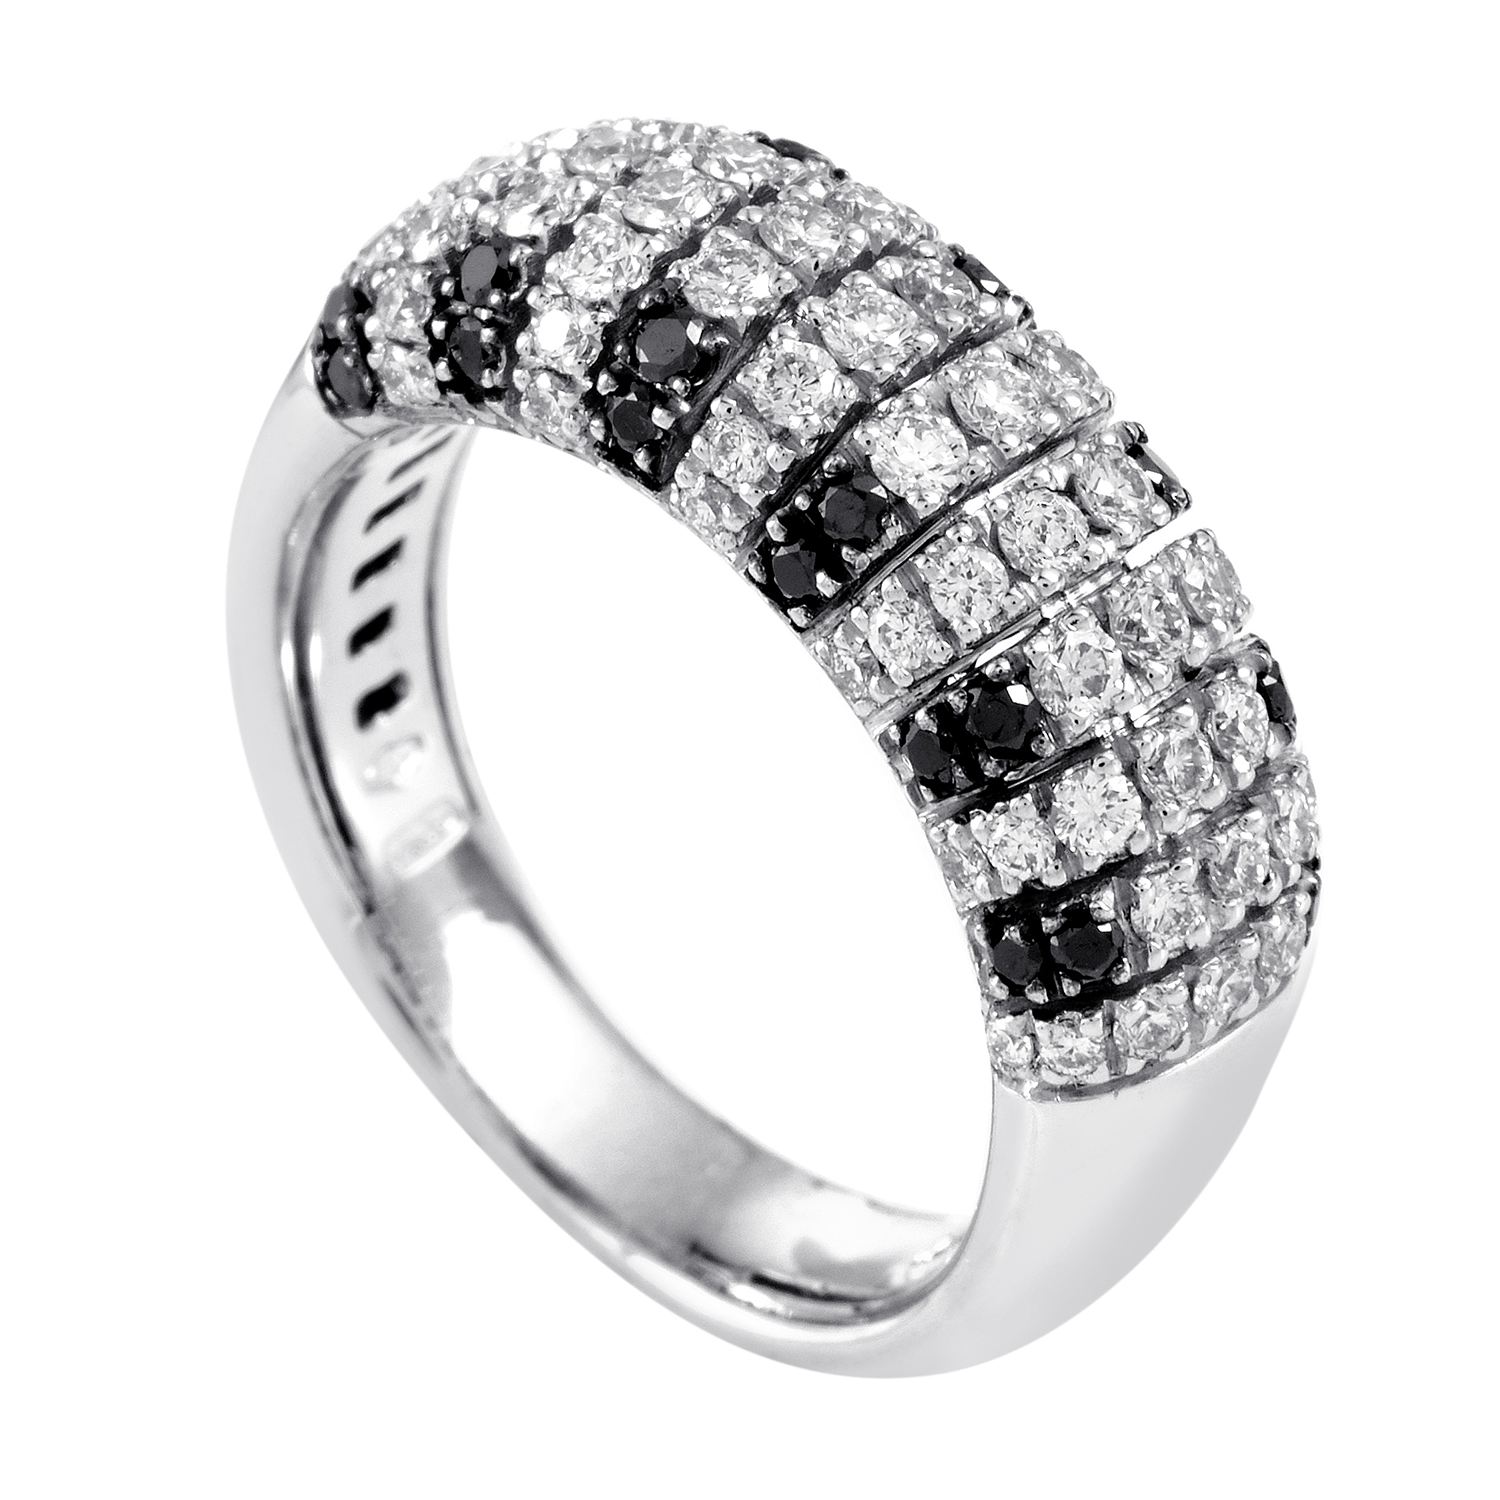 Women's 18K White Gold Black & White Diamond Band Ring